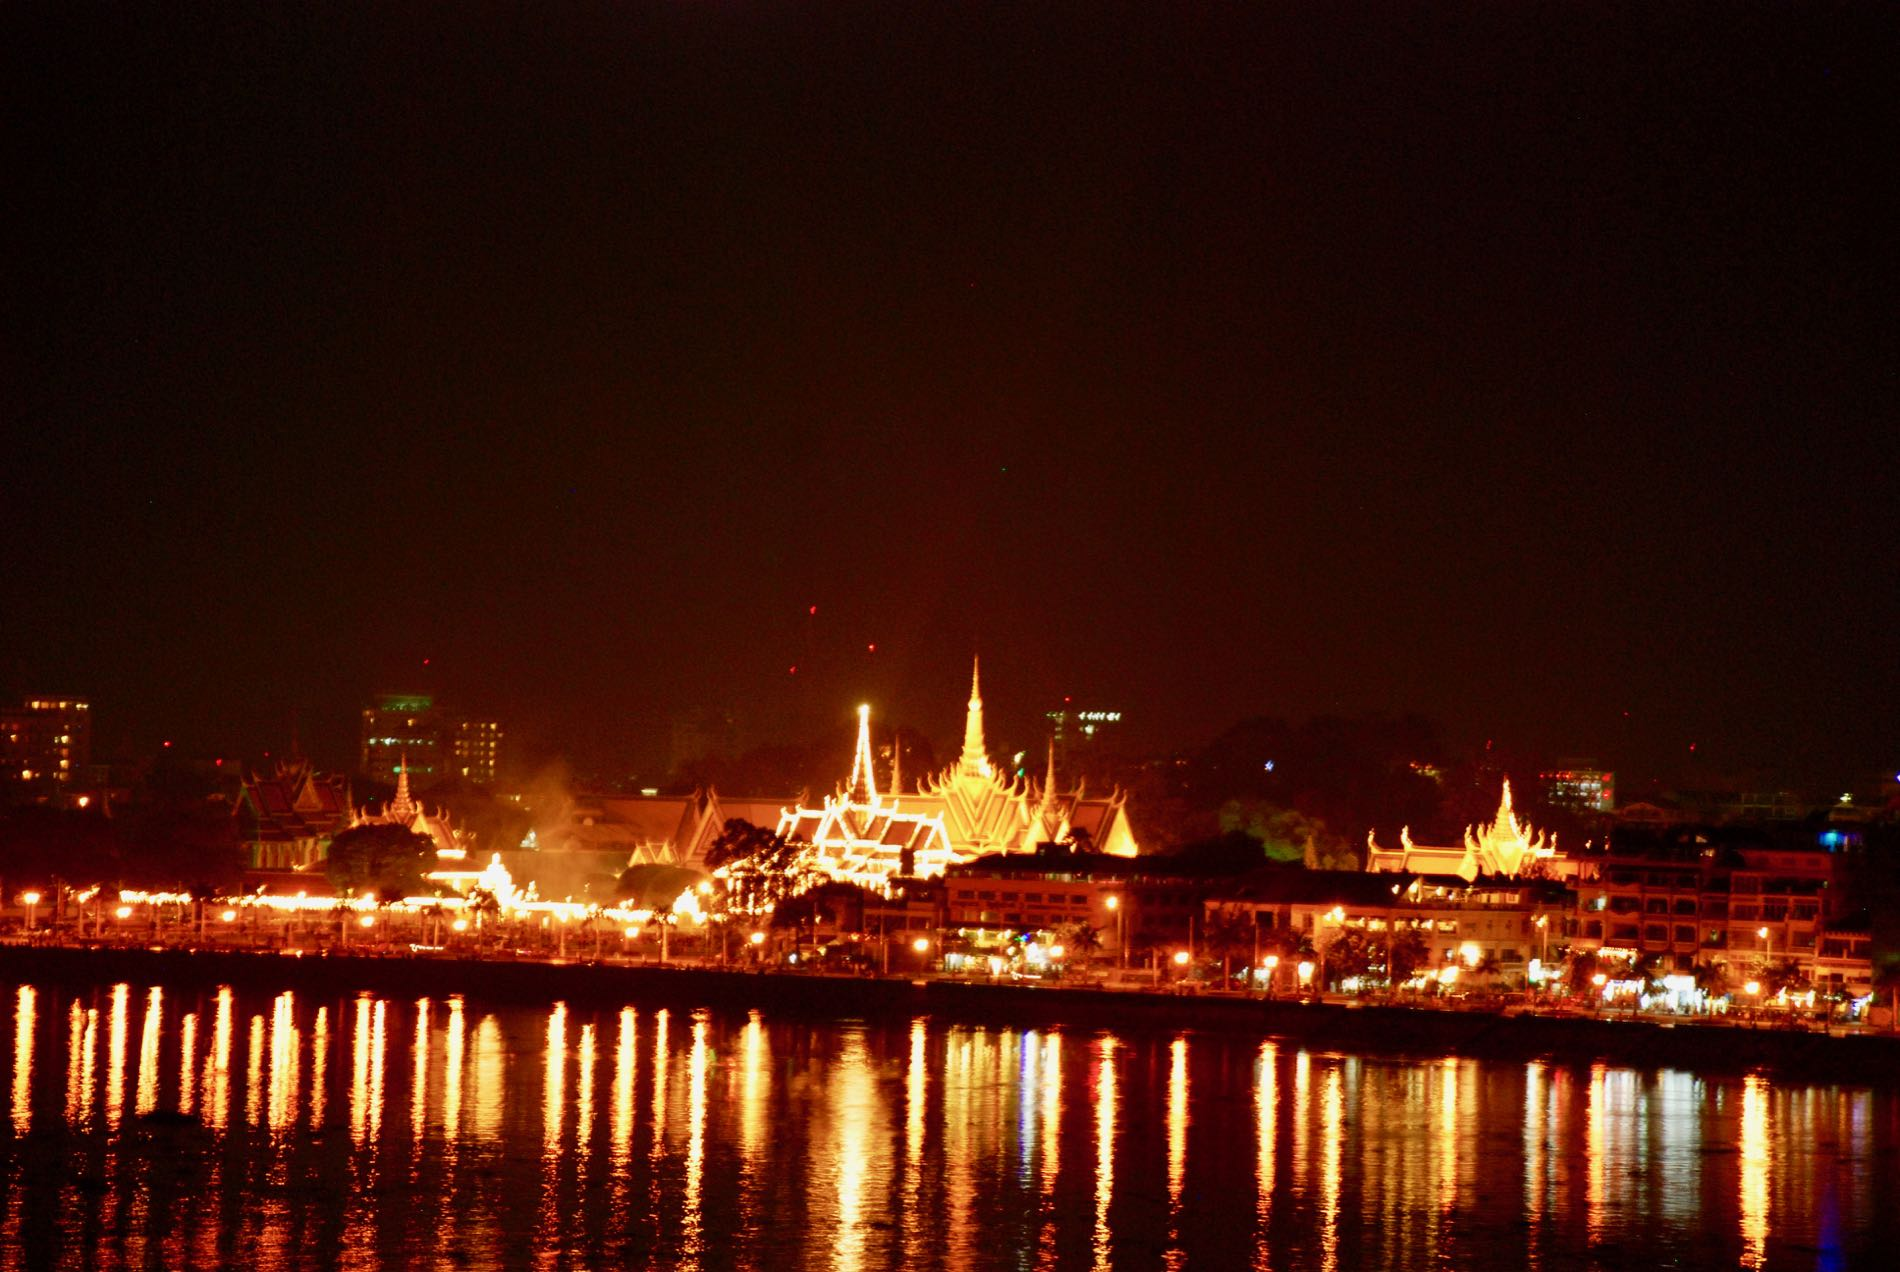 Cambodia's Royal Palace in Phnom Penh lit up for water festival.jpg